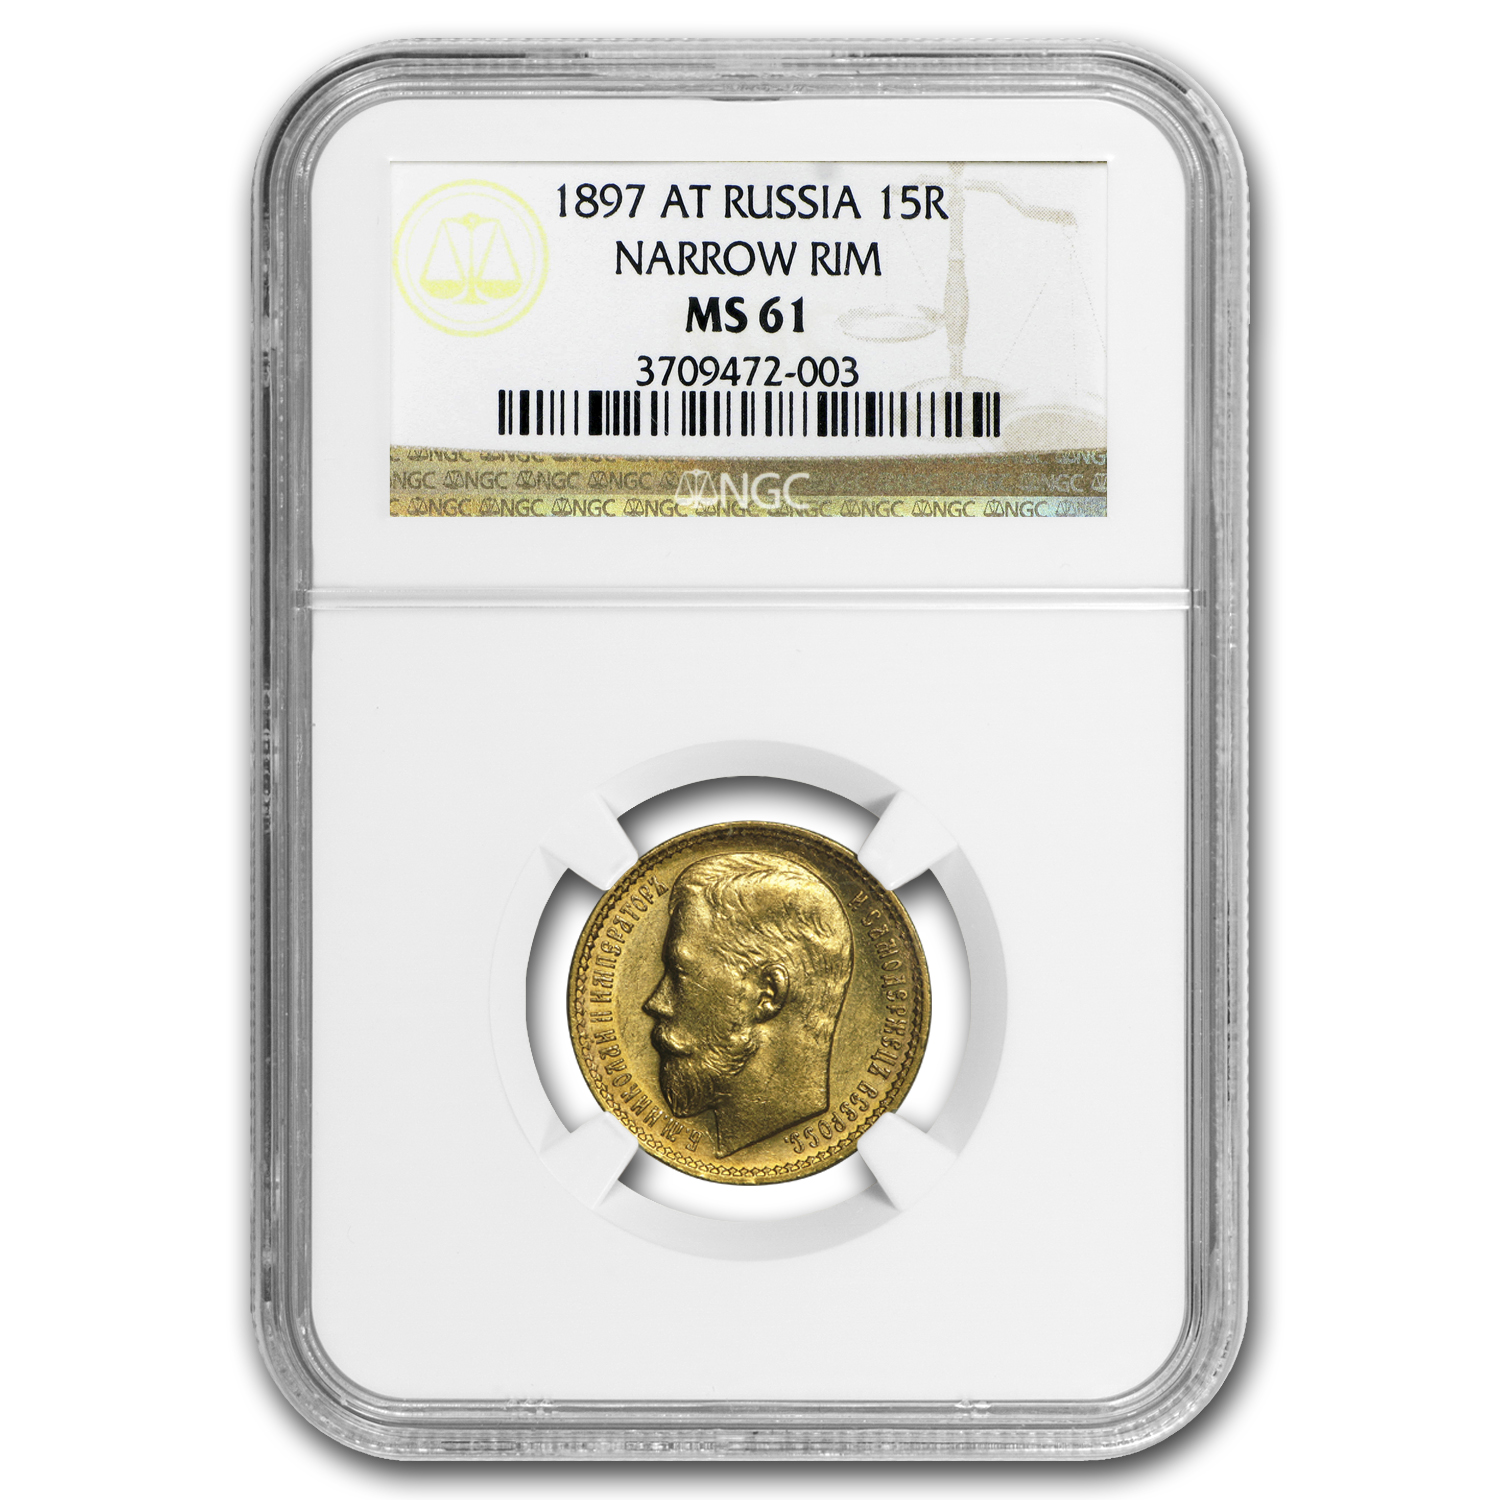 1897 Russia Gold 15 Roubles Nicholas II MS-61 NGC (Narrow Rim)